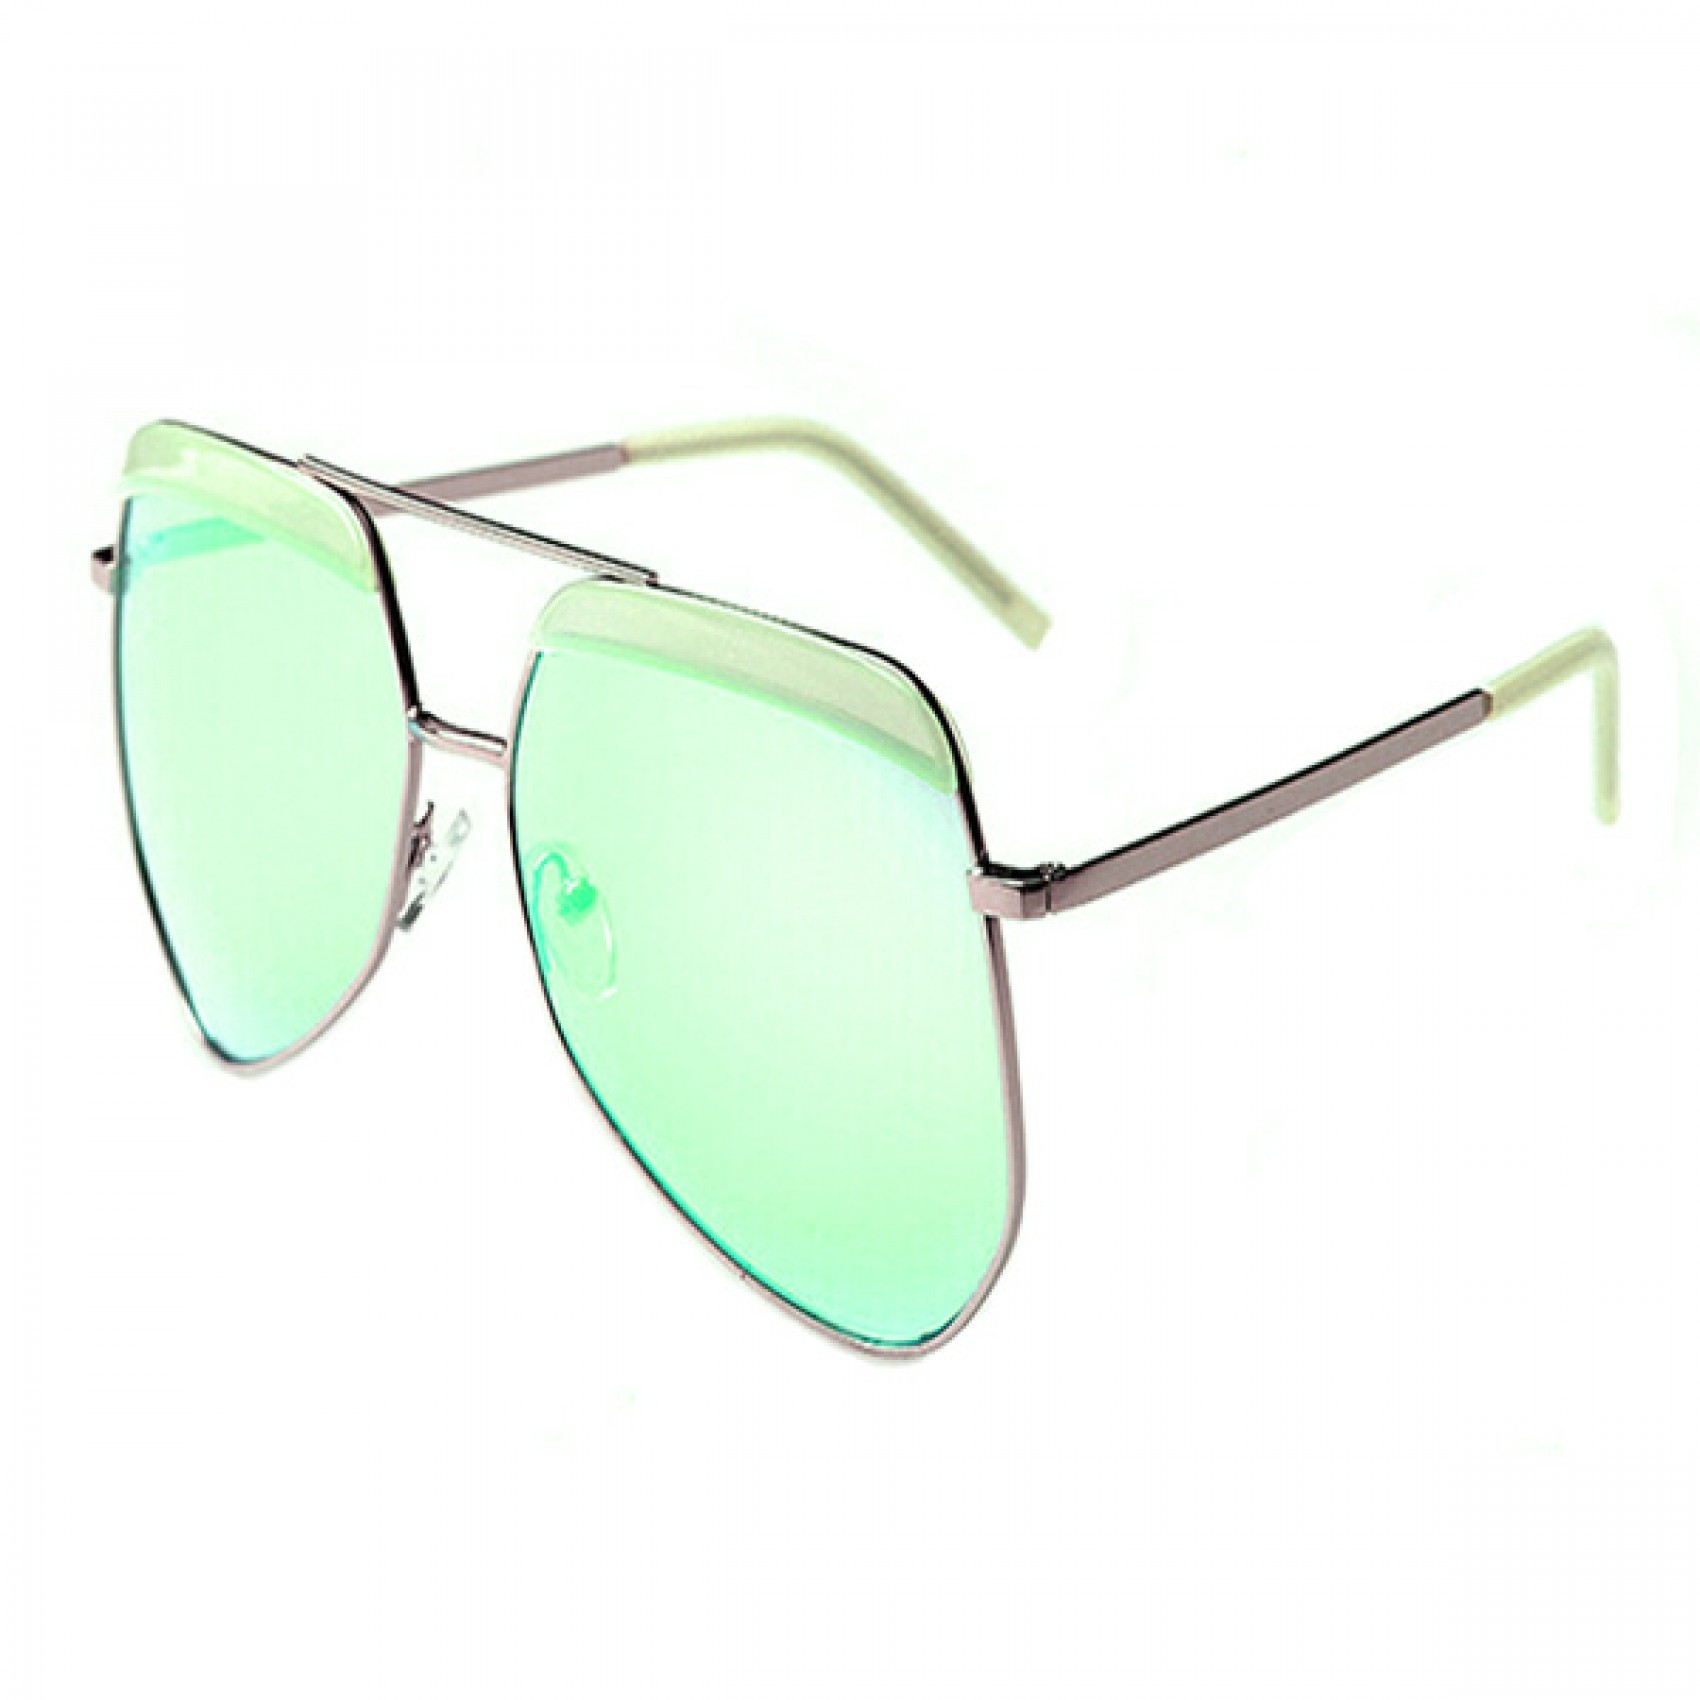 Generic Aviator Sunglasses - Green (LGGEN00001GRN-0003848)